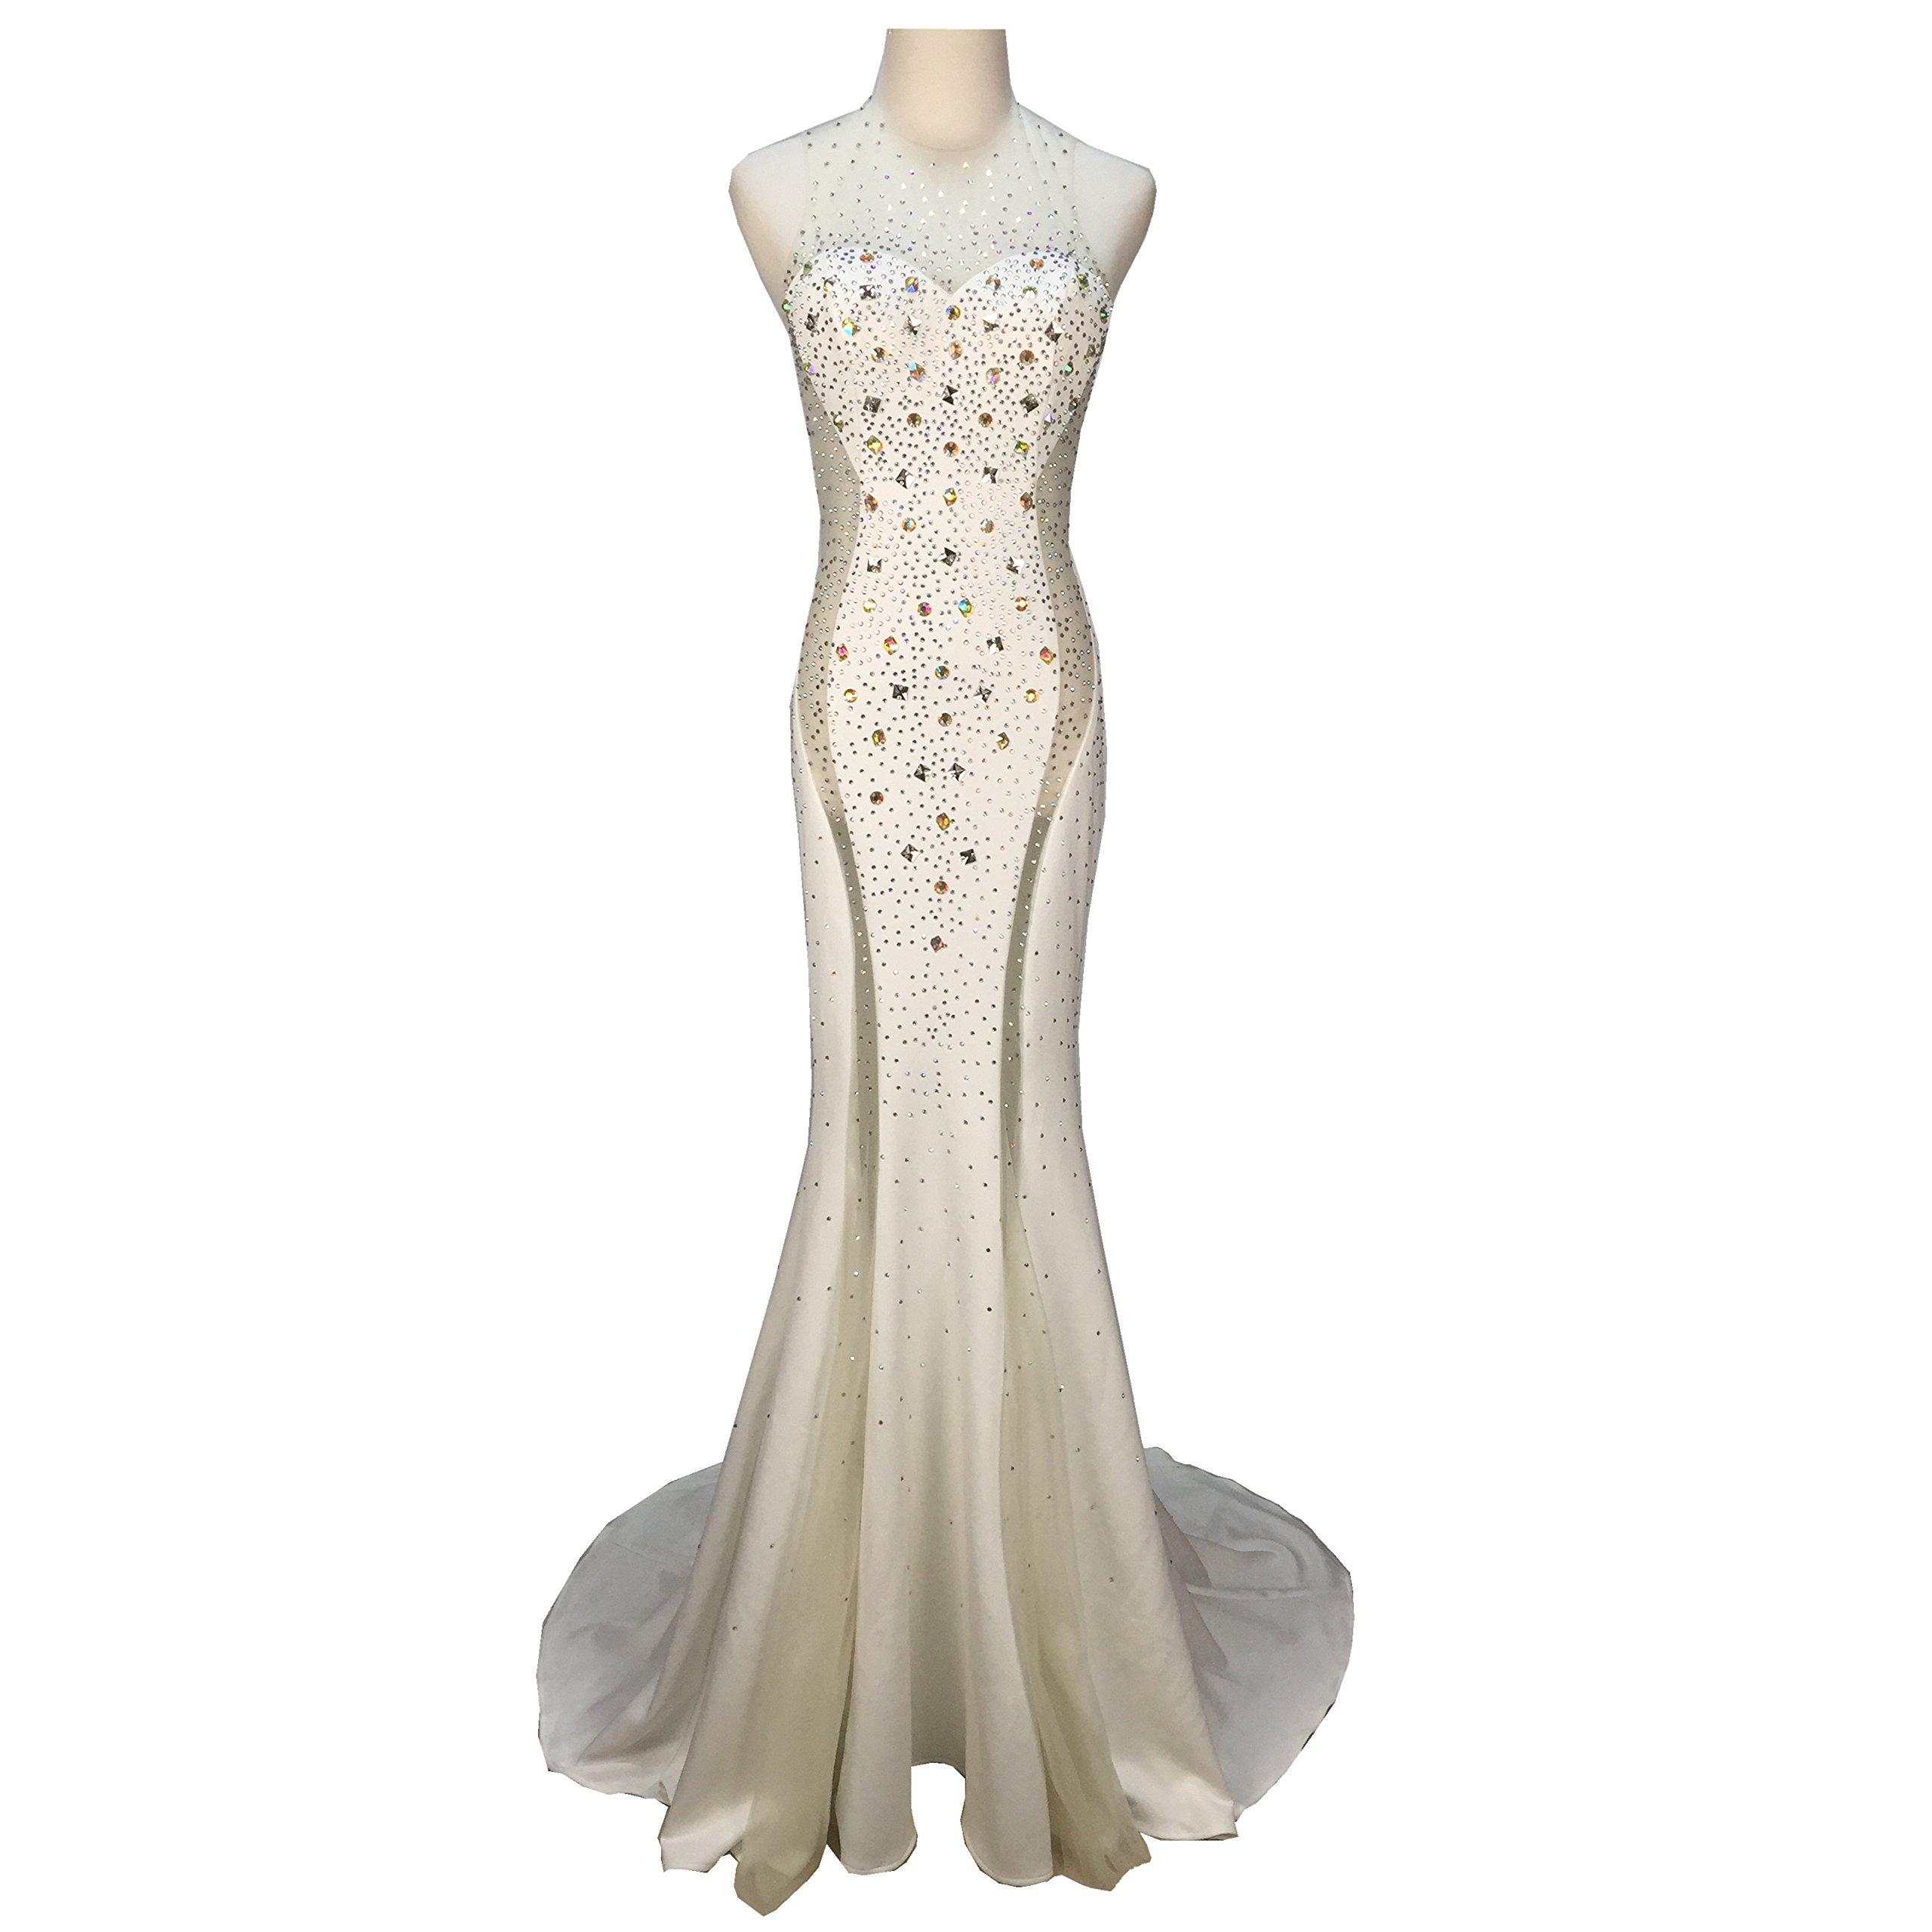 Gypsophila Women's Long Fitted Beading Sleeveless Mermaid Evening Gown Dress (4, White)